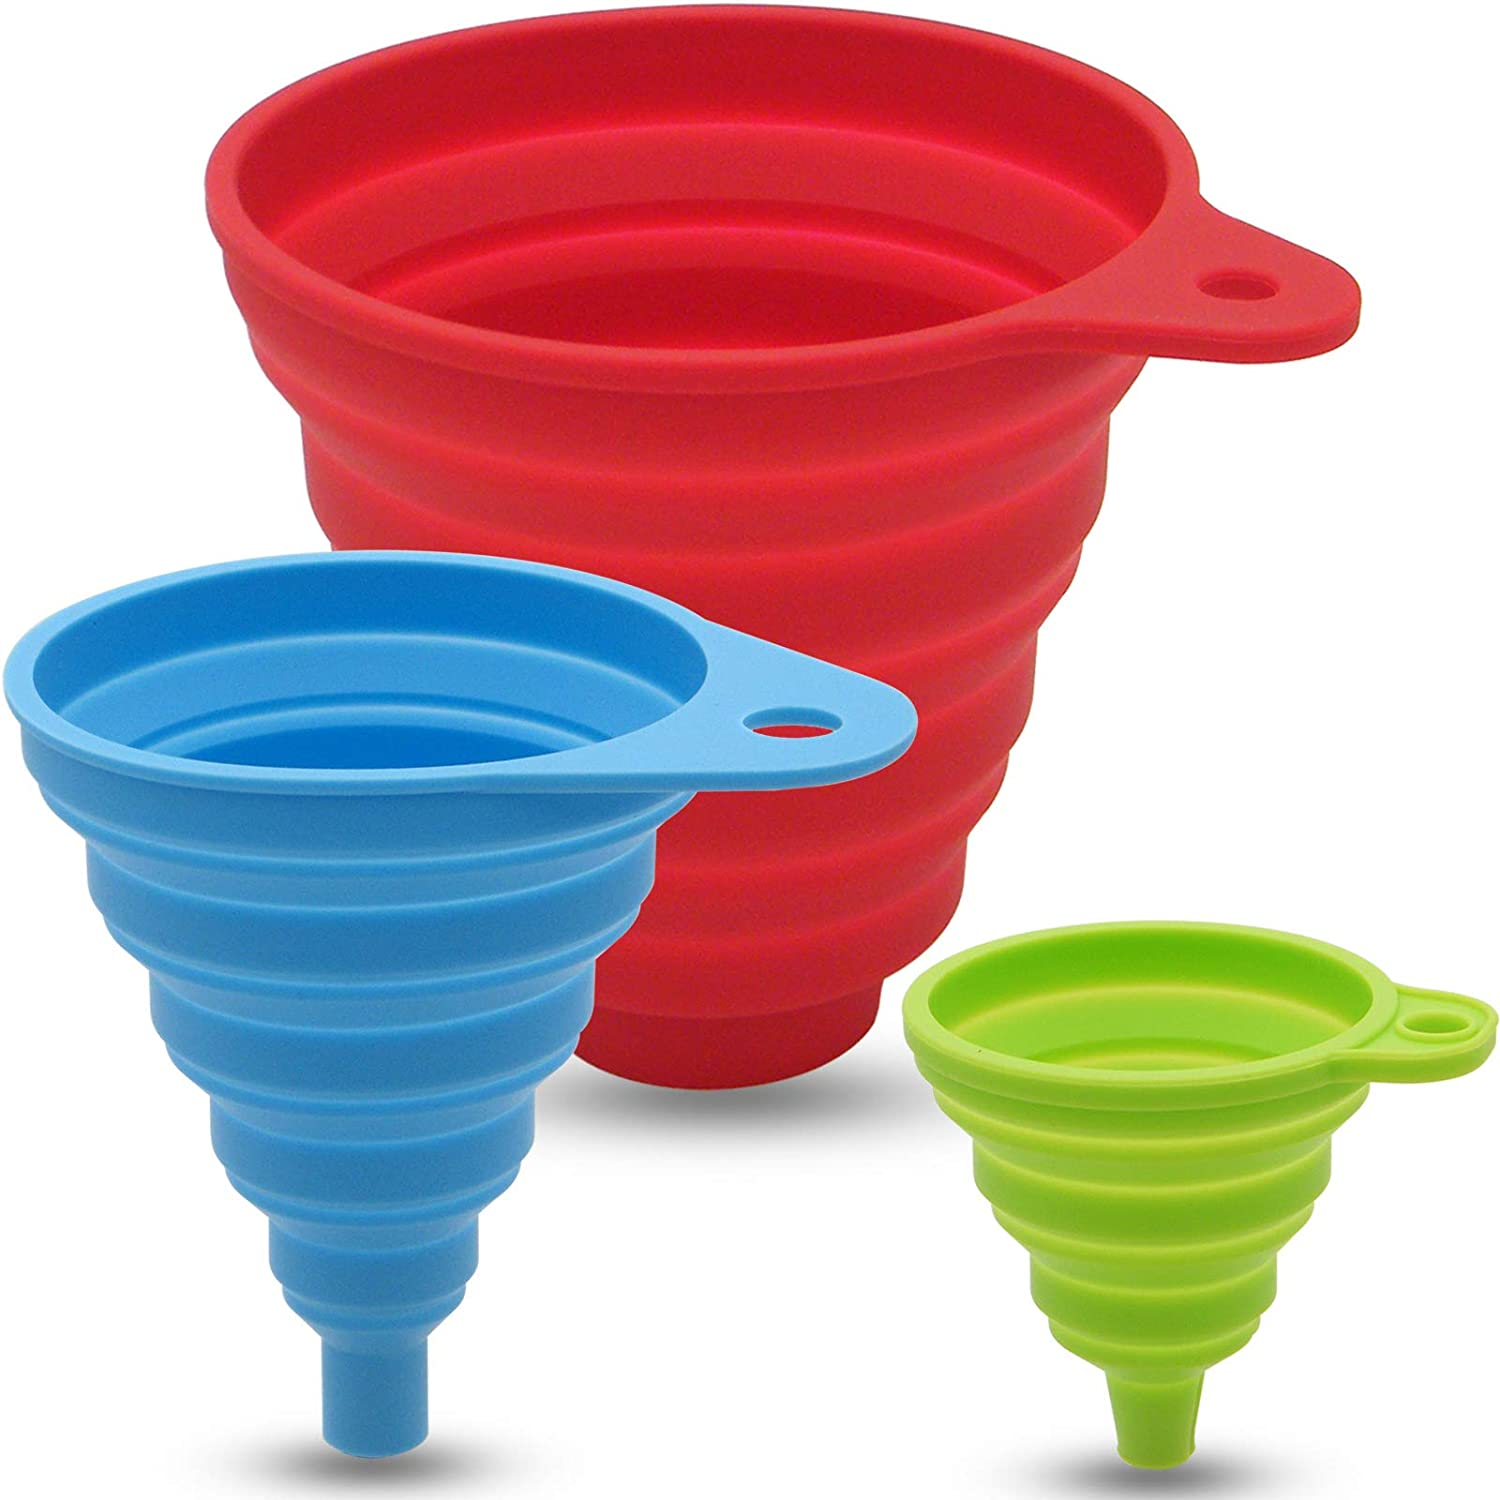 3 Sizes of Kitchen Funnel Set, Food Grade Funnels for Filling Bottles, Premium Silicone Collapsible Funnel for Transferring Liquid, Powder Transfer, Large Wide Mouth Canning Funnel, Small Funnel